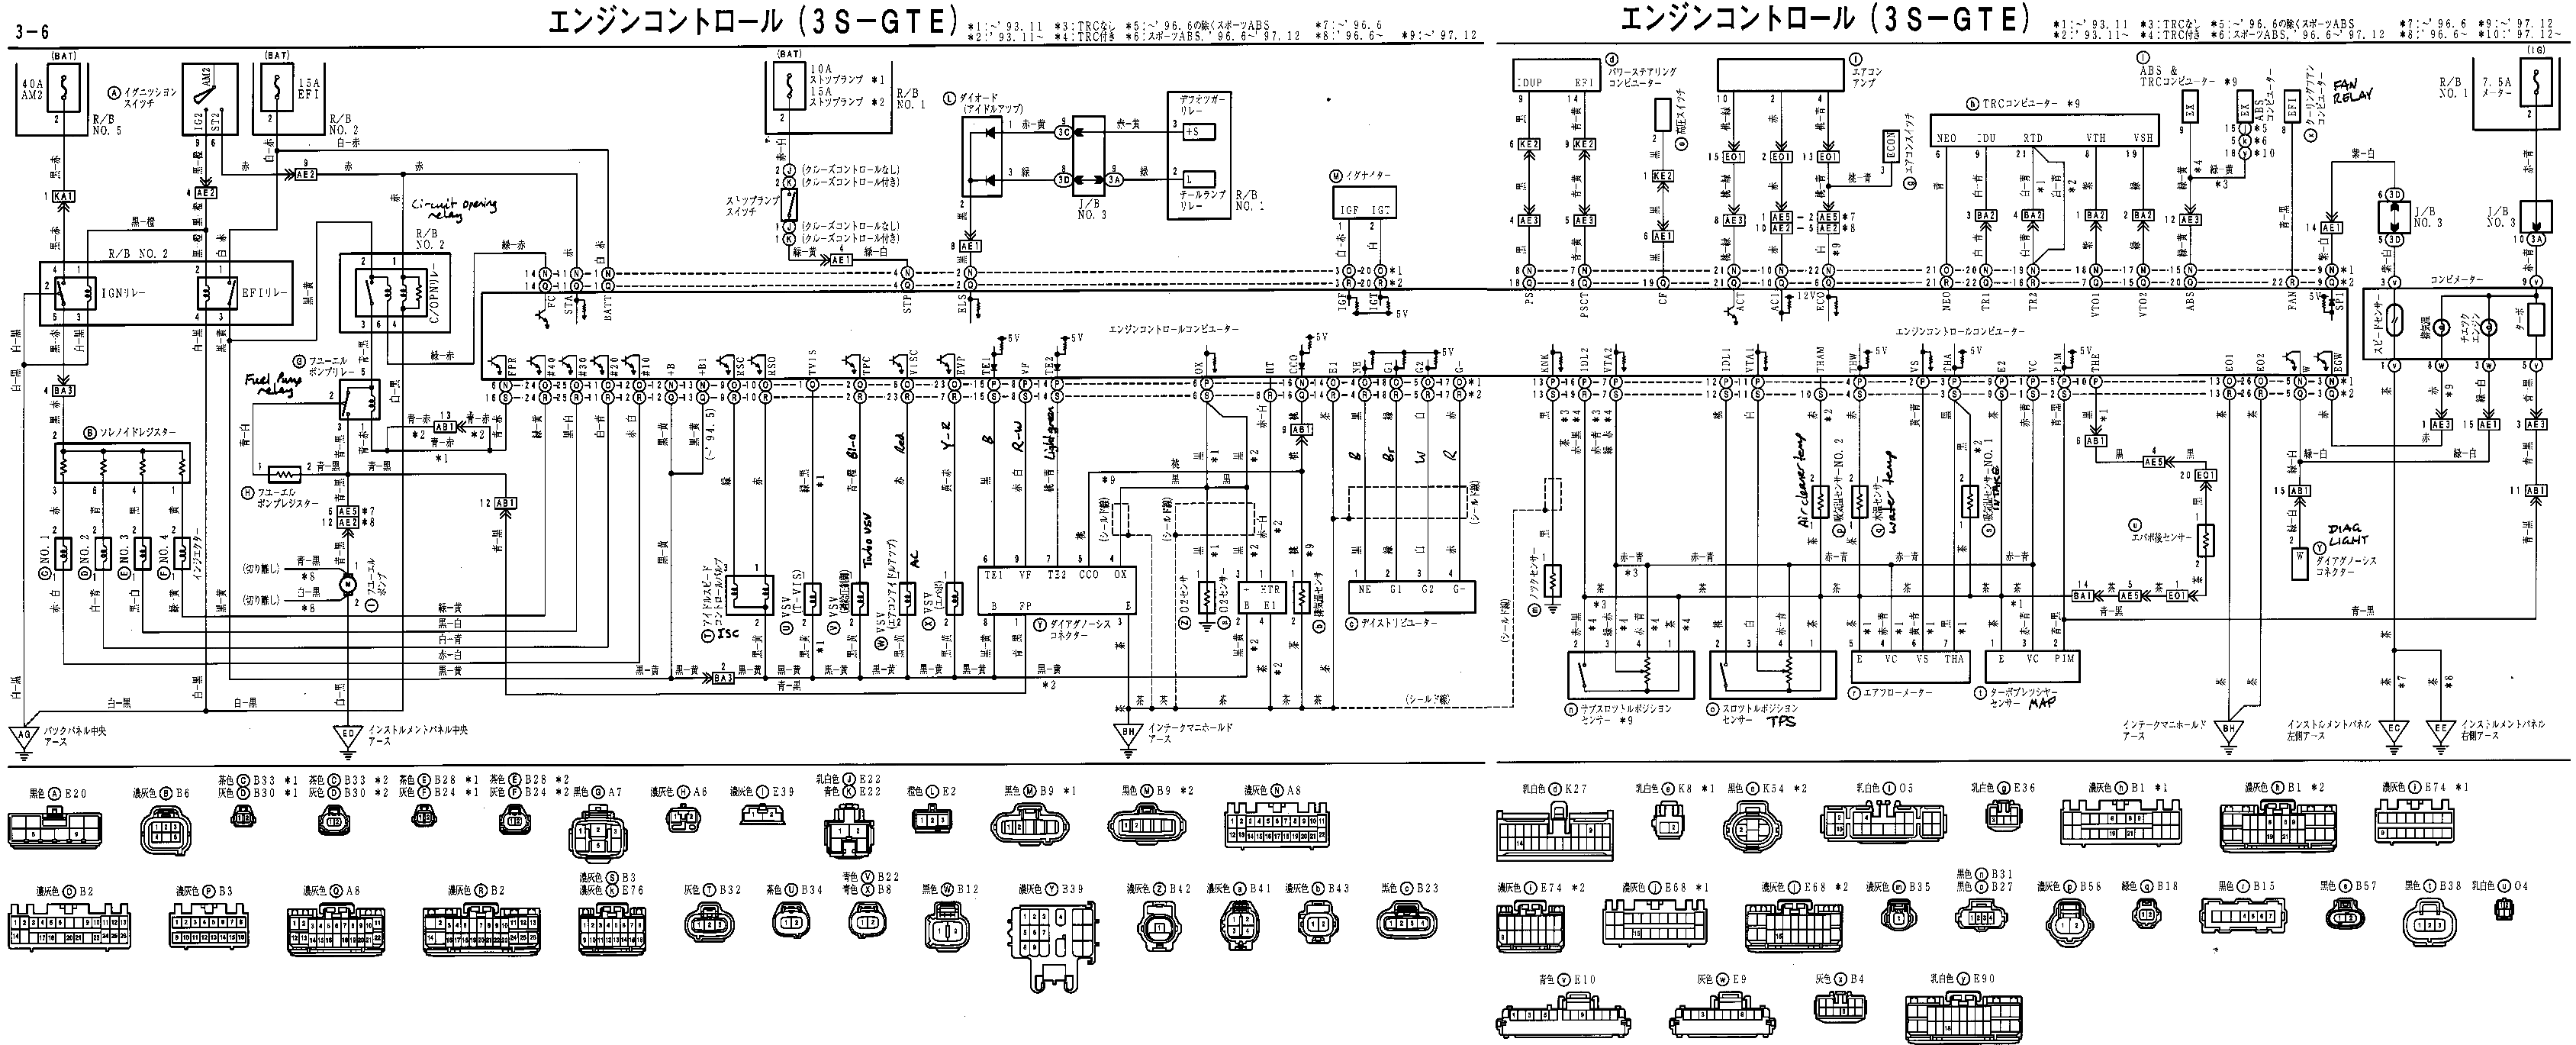 mwp s toyota celica gt4 alltrac st165 st185 st205 documents unknown model ecu diagram